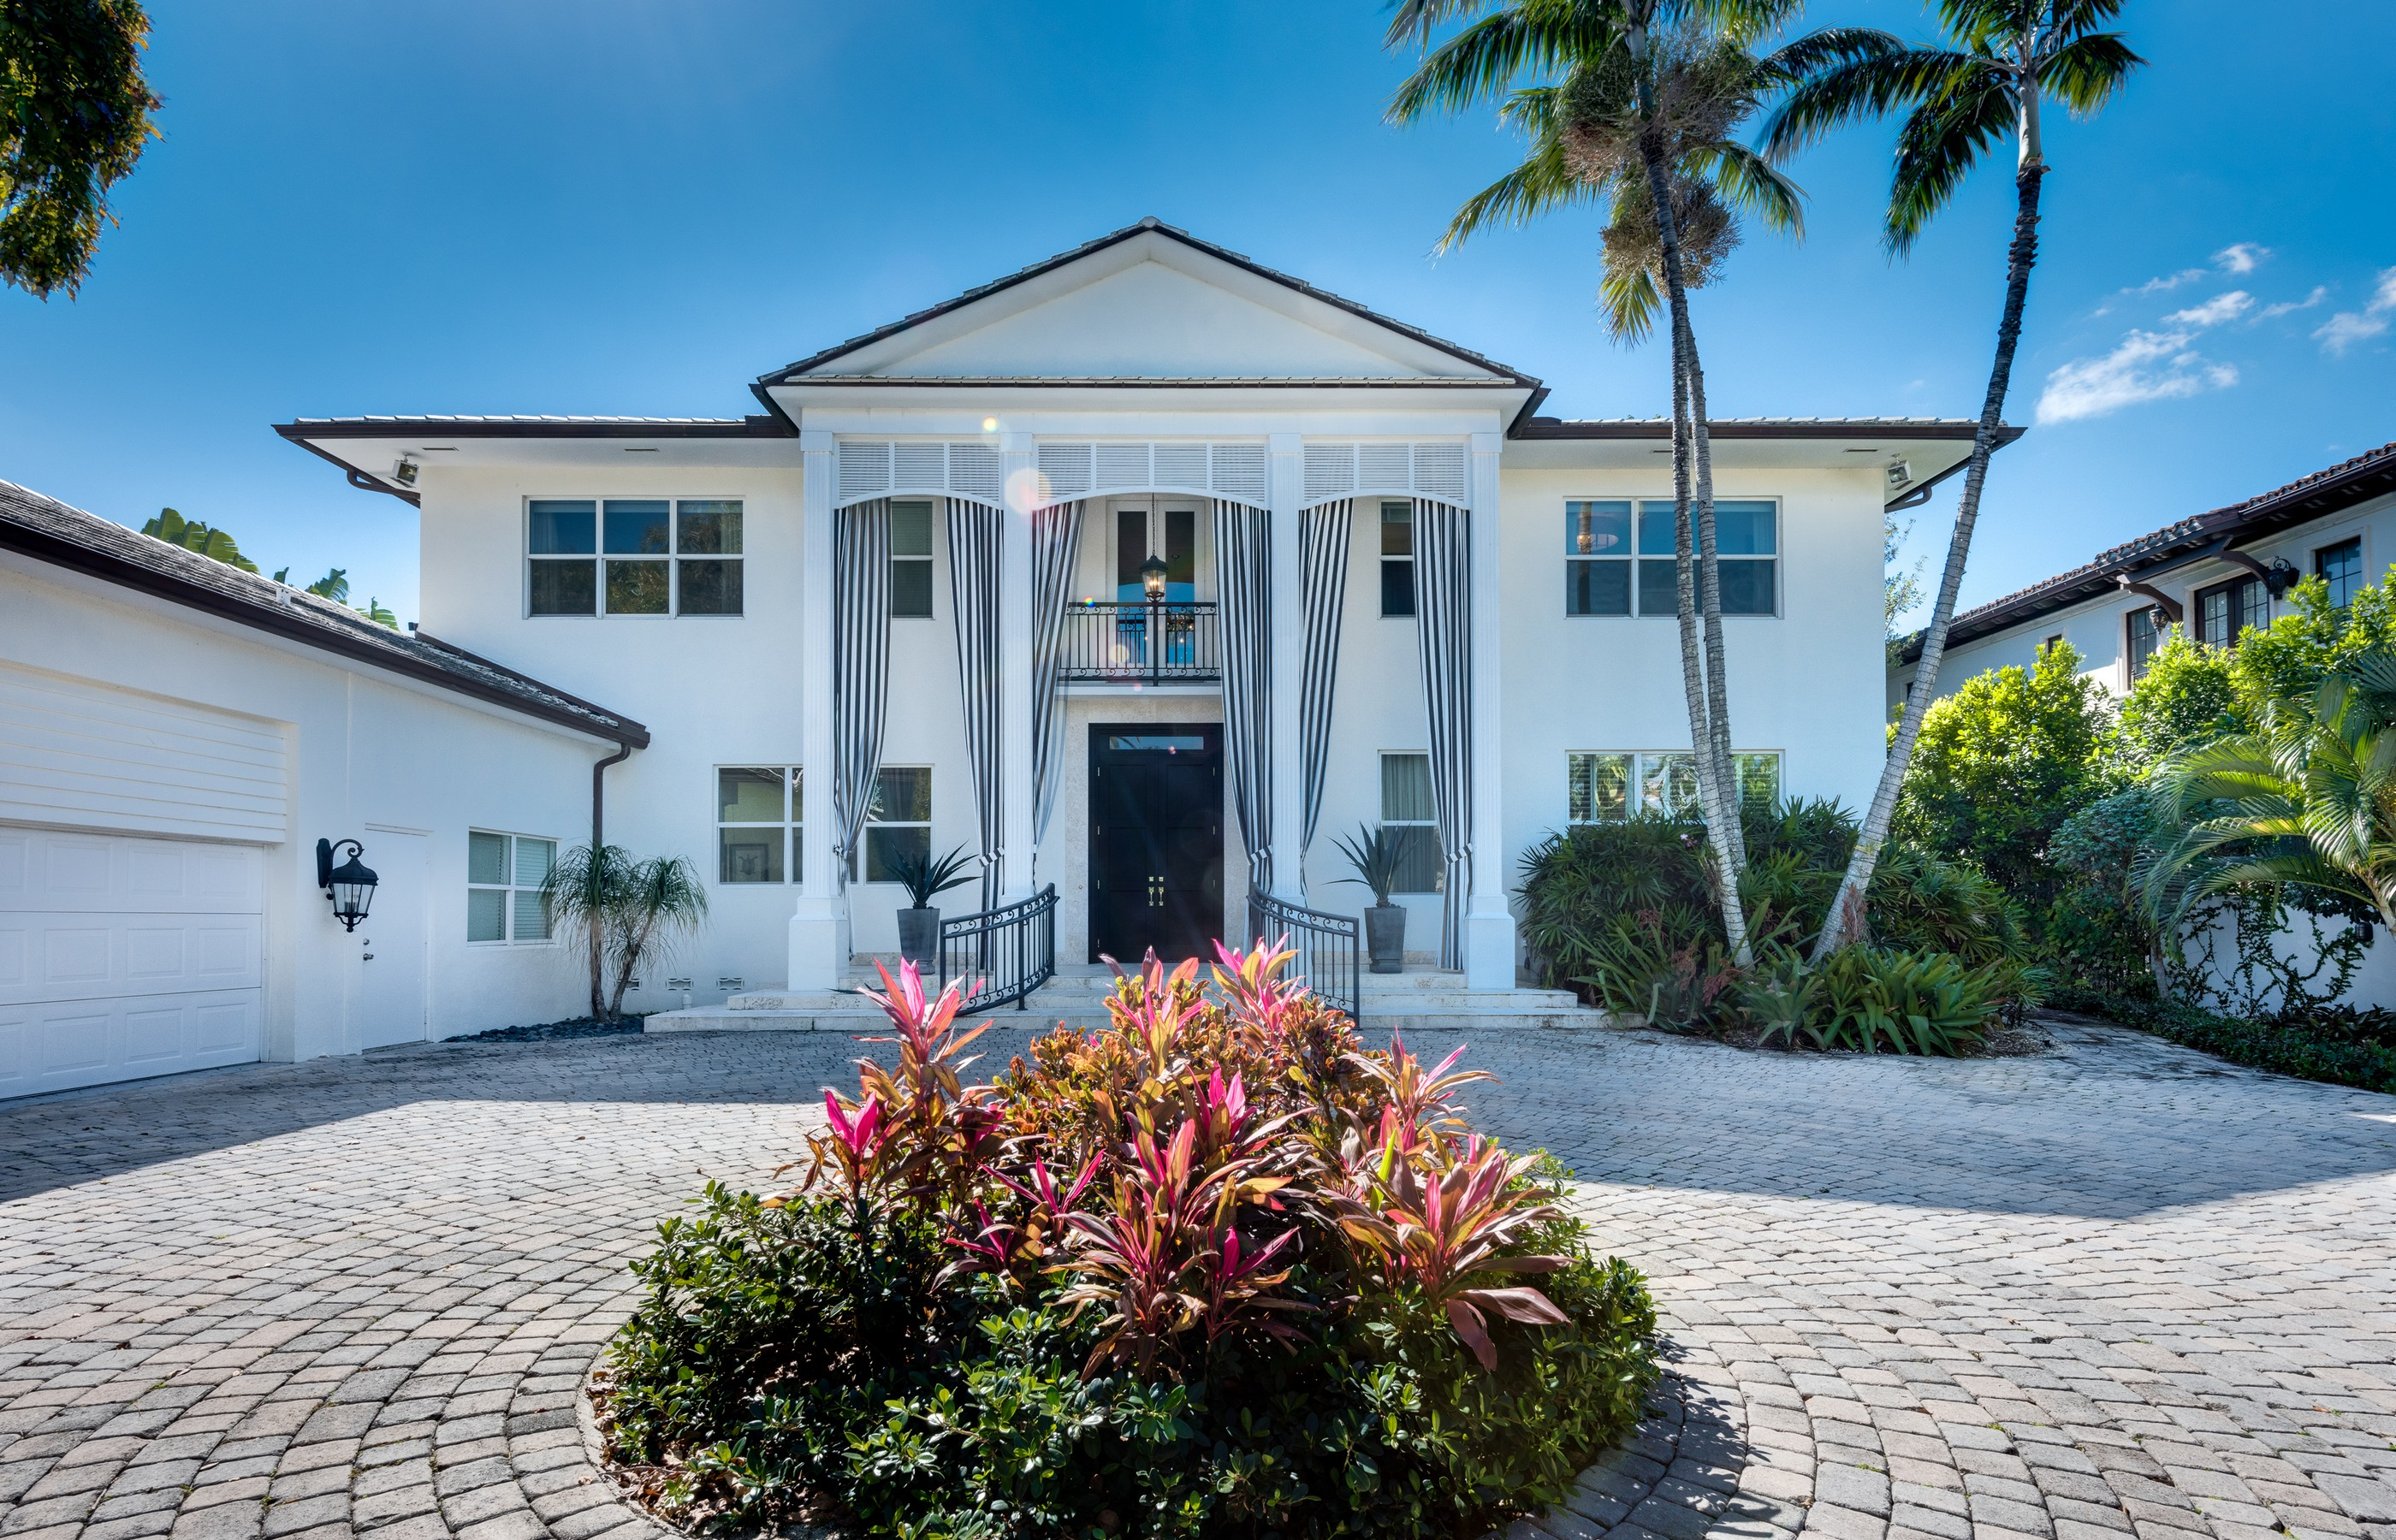 Single Family Home for Sale at 1520 SW 28 St 1520 W 28th St Miami Beach, Florida, 33140 United States